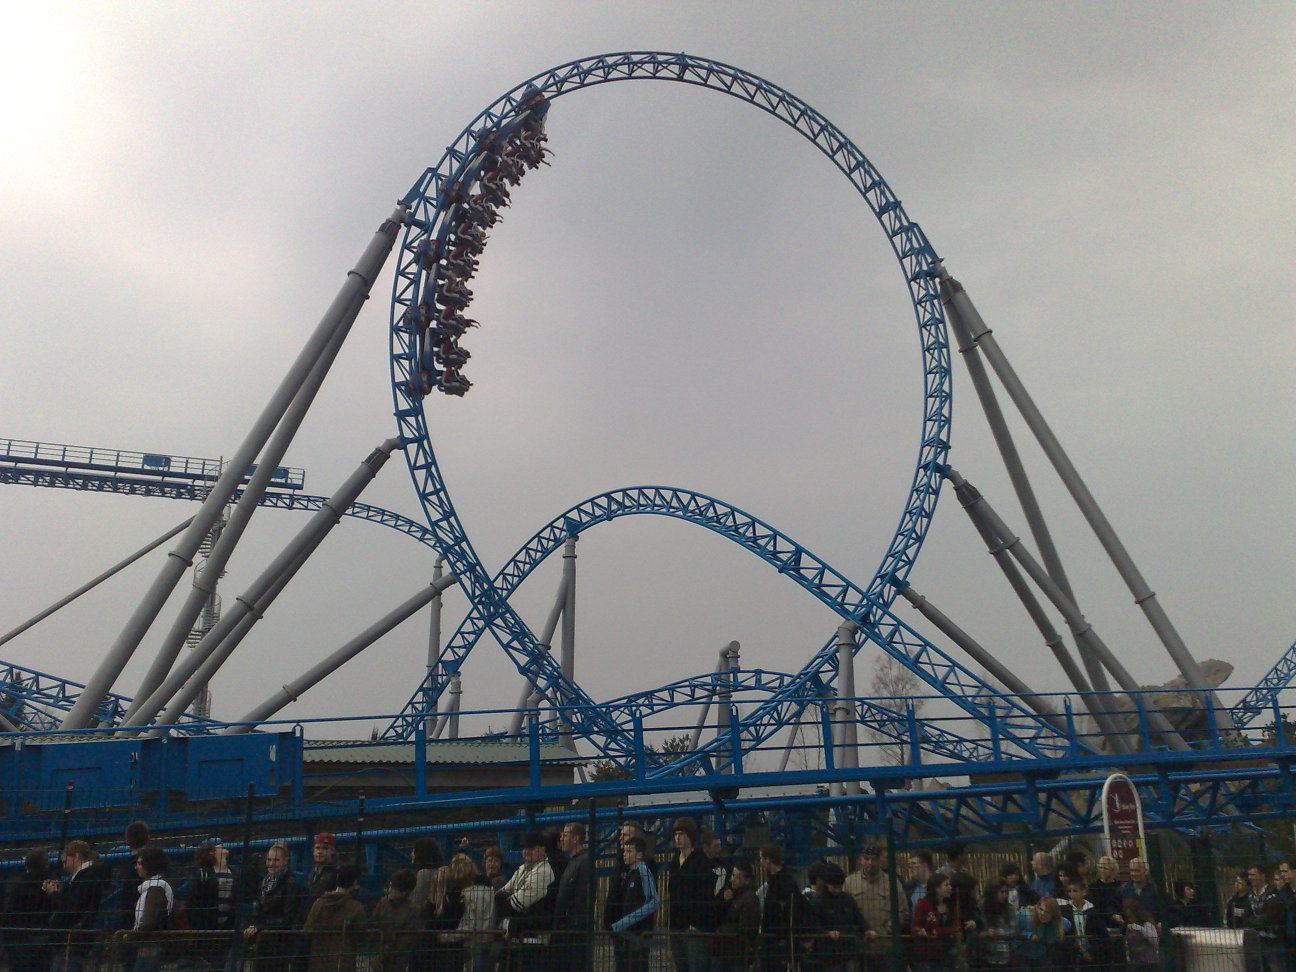 Blue Fire roller coaster-s